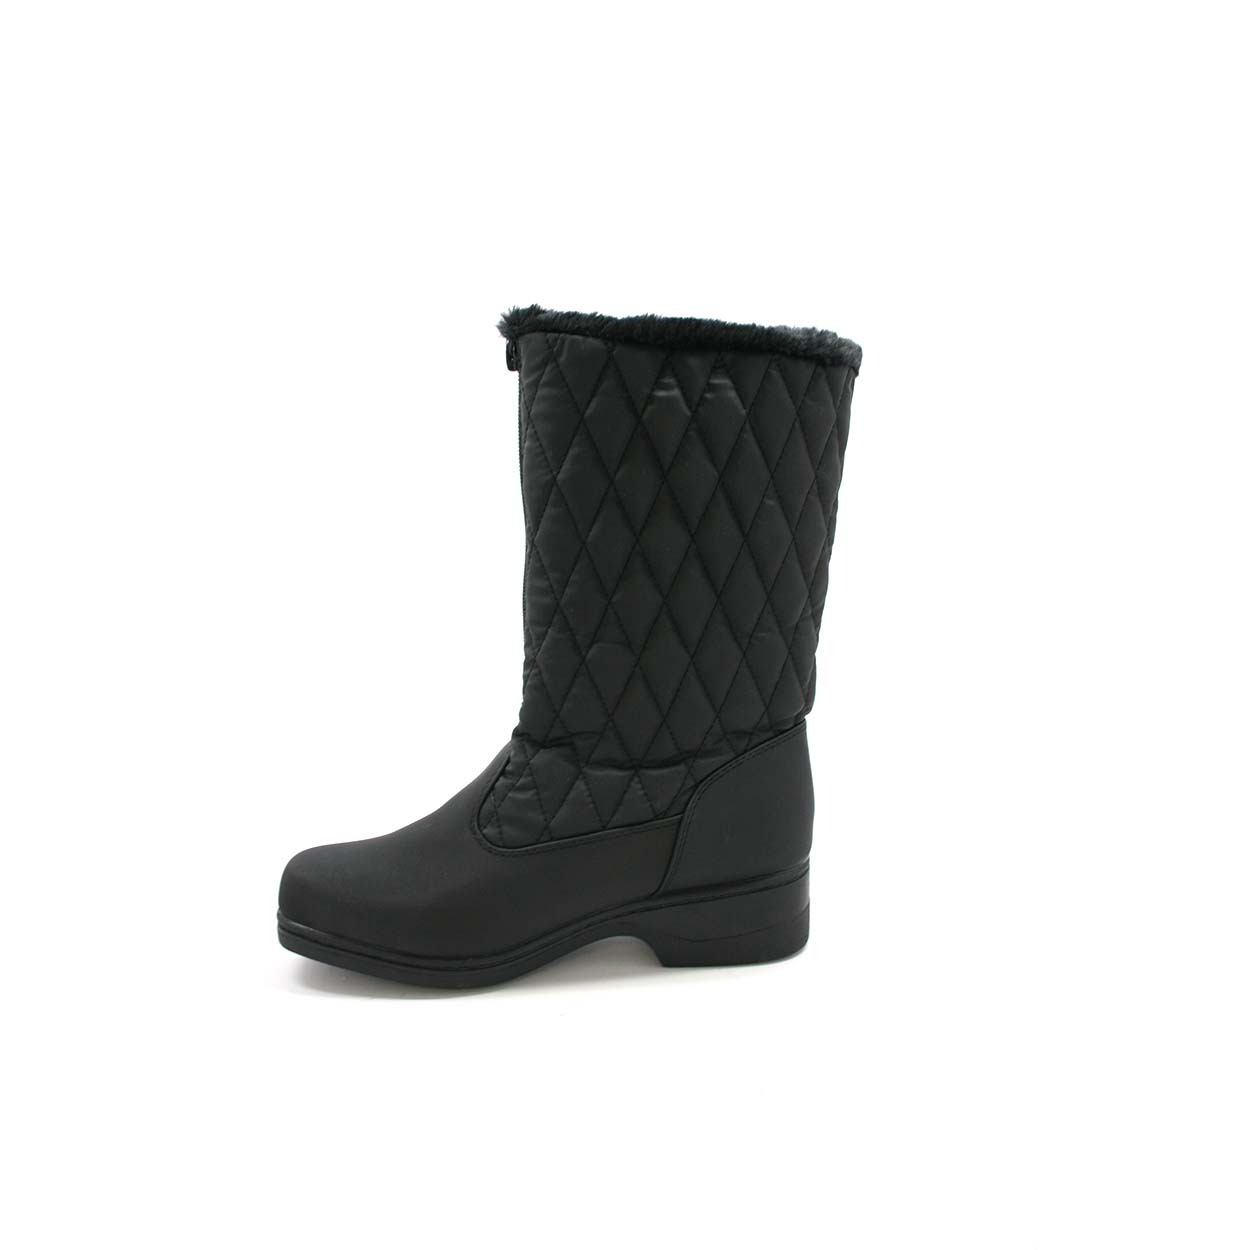 Totes Women-Quilty Black Waterproof Boots [Totes-Quilty] - $47.50 ...